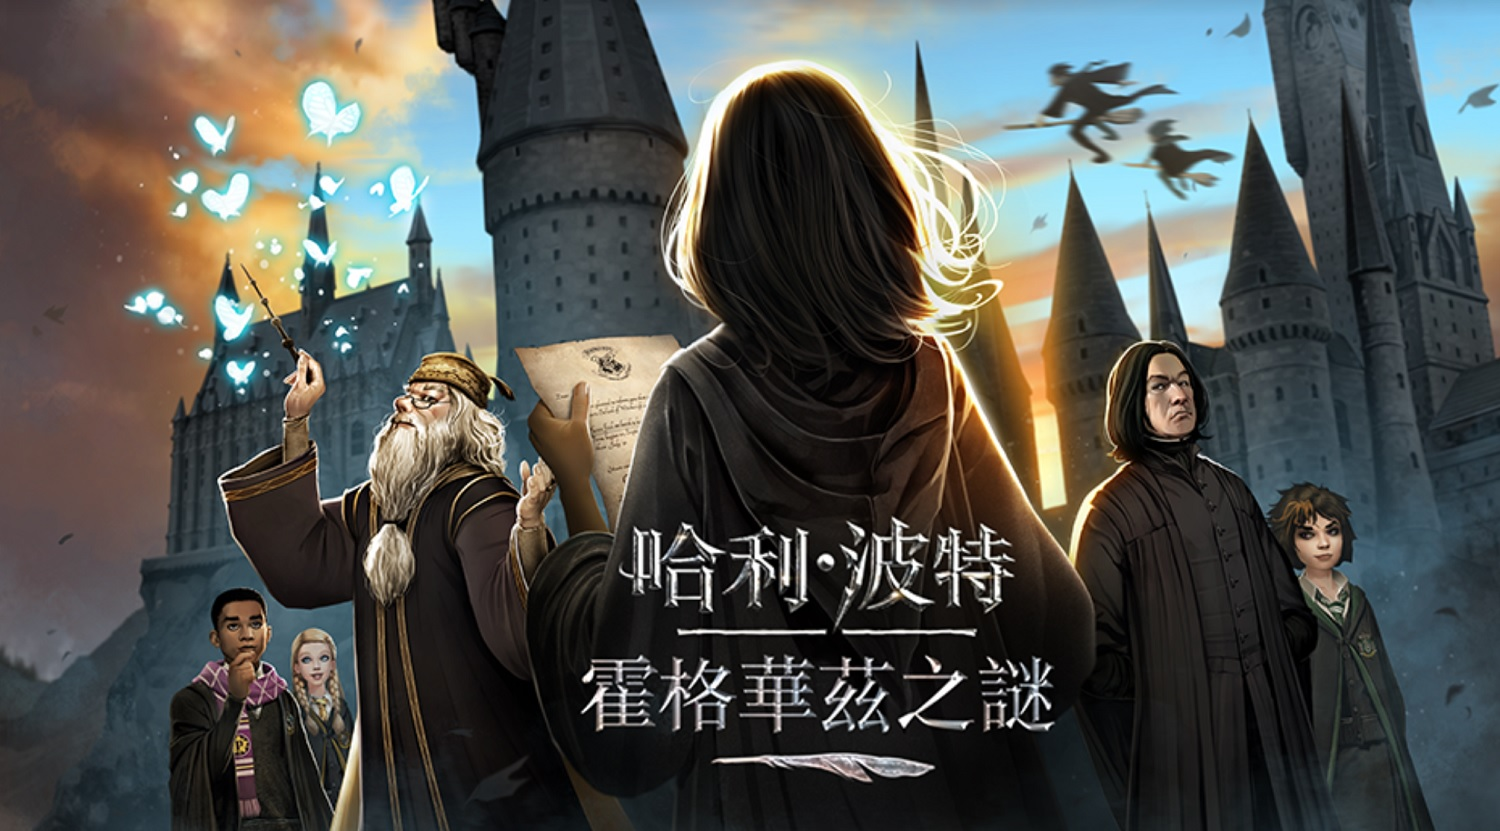 Harry Potter: Hogwarts Mystery rolls out on mobile to Hong Kong and Taiwan